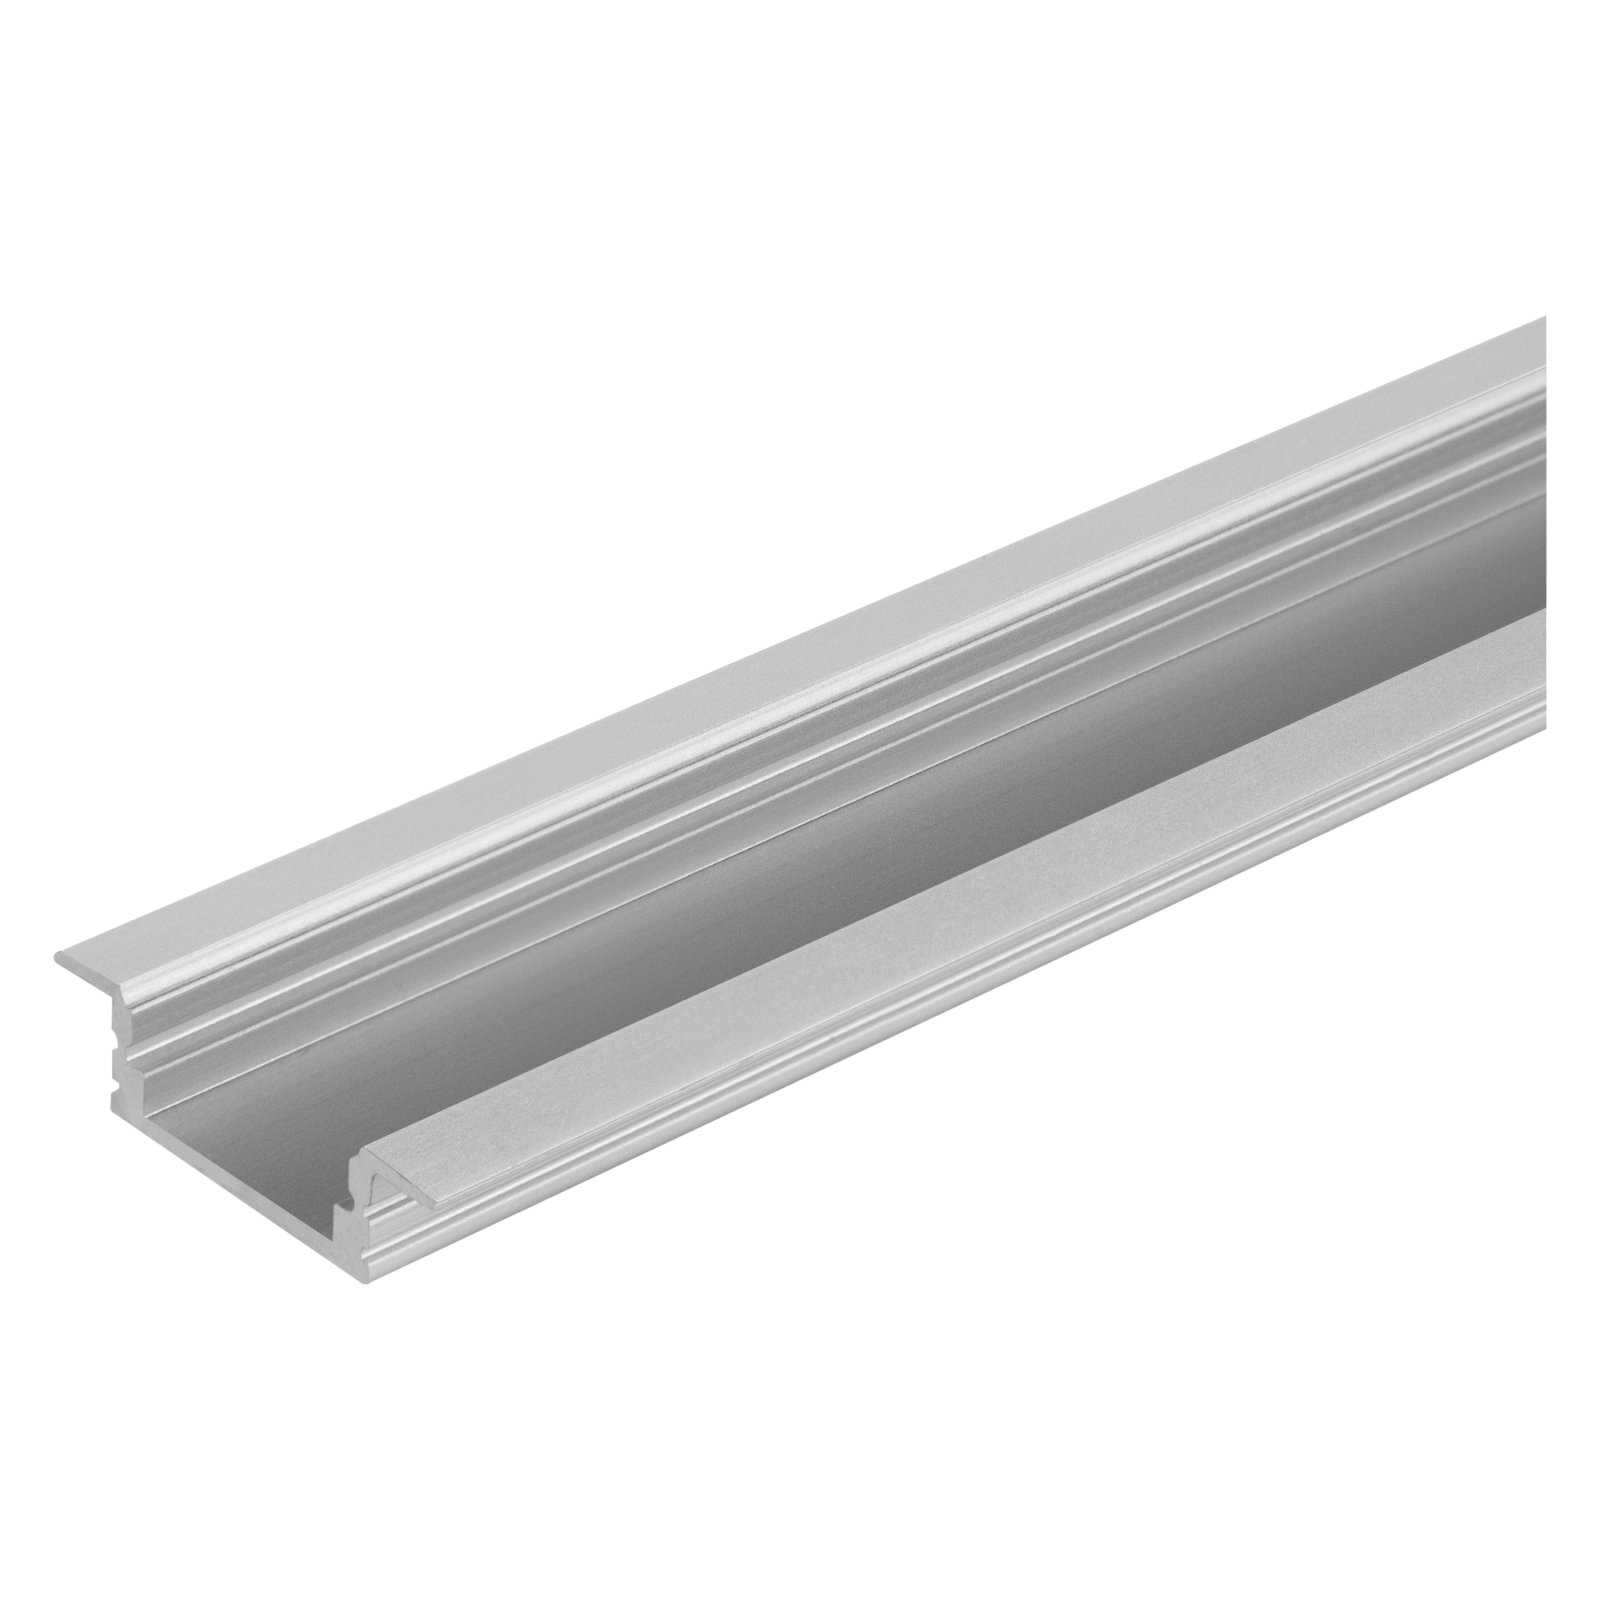 LED Strip Profiles Flat Flat profiles for LED strips | Products